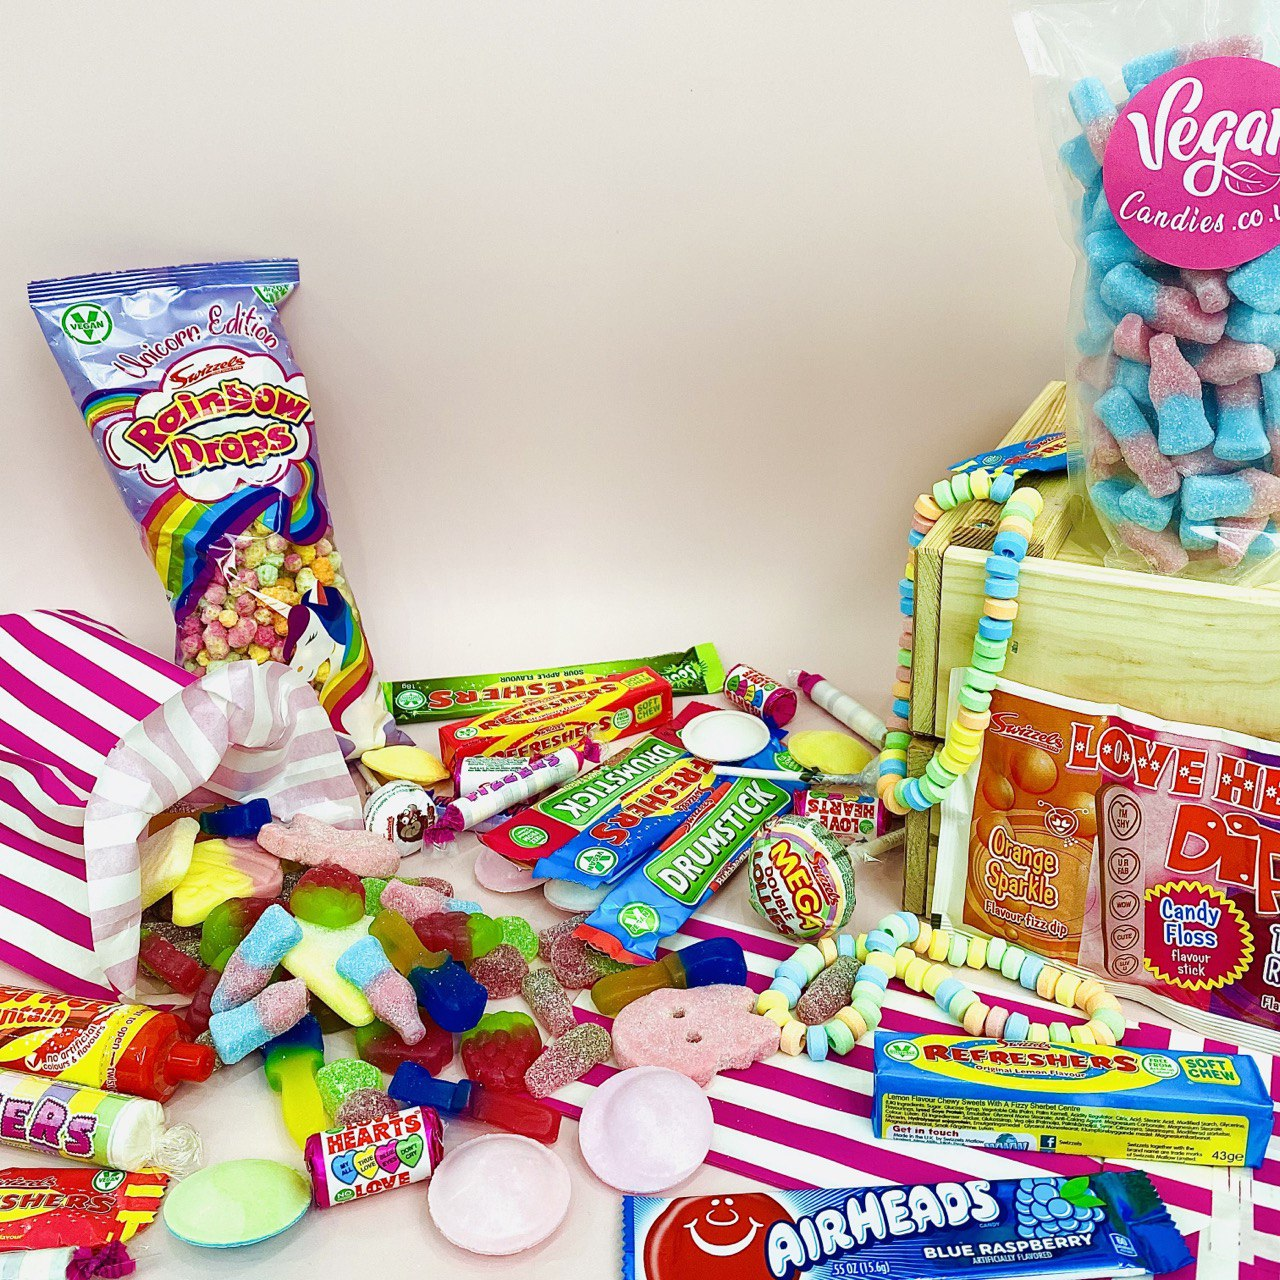 12 Days of Christmas: WIN a bundle of vegan sweets from Vegan Candies!